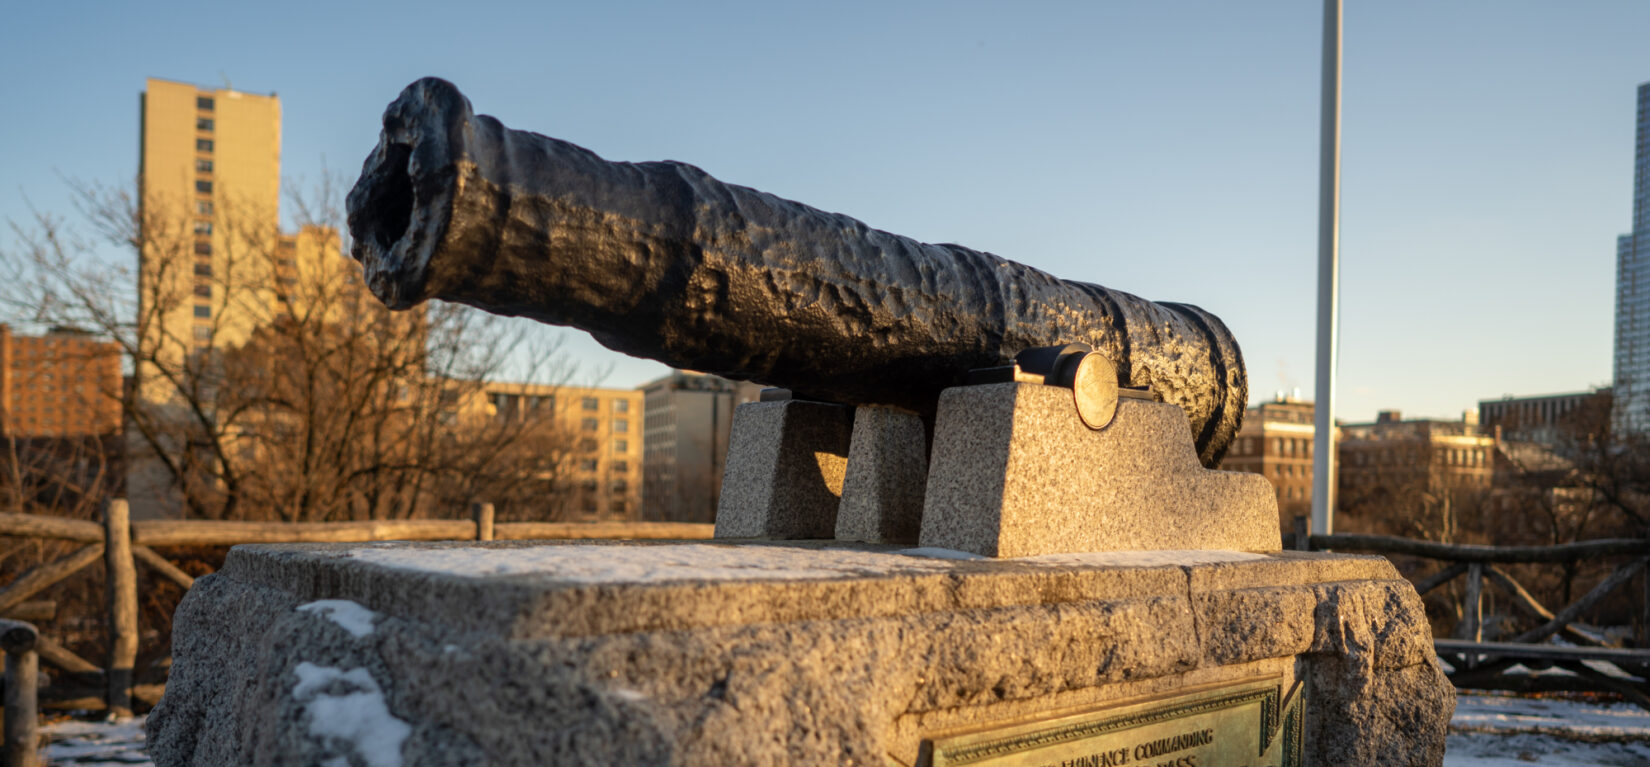 A canon commemorates the location of McGowan's Pass, with a slice of the Harlem skyline in the background.